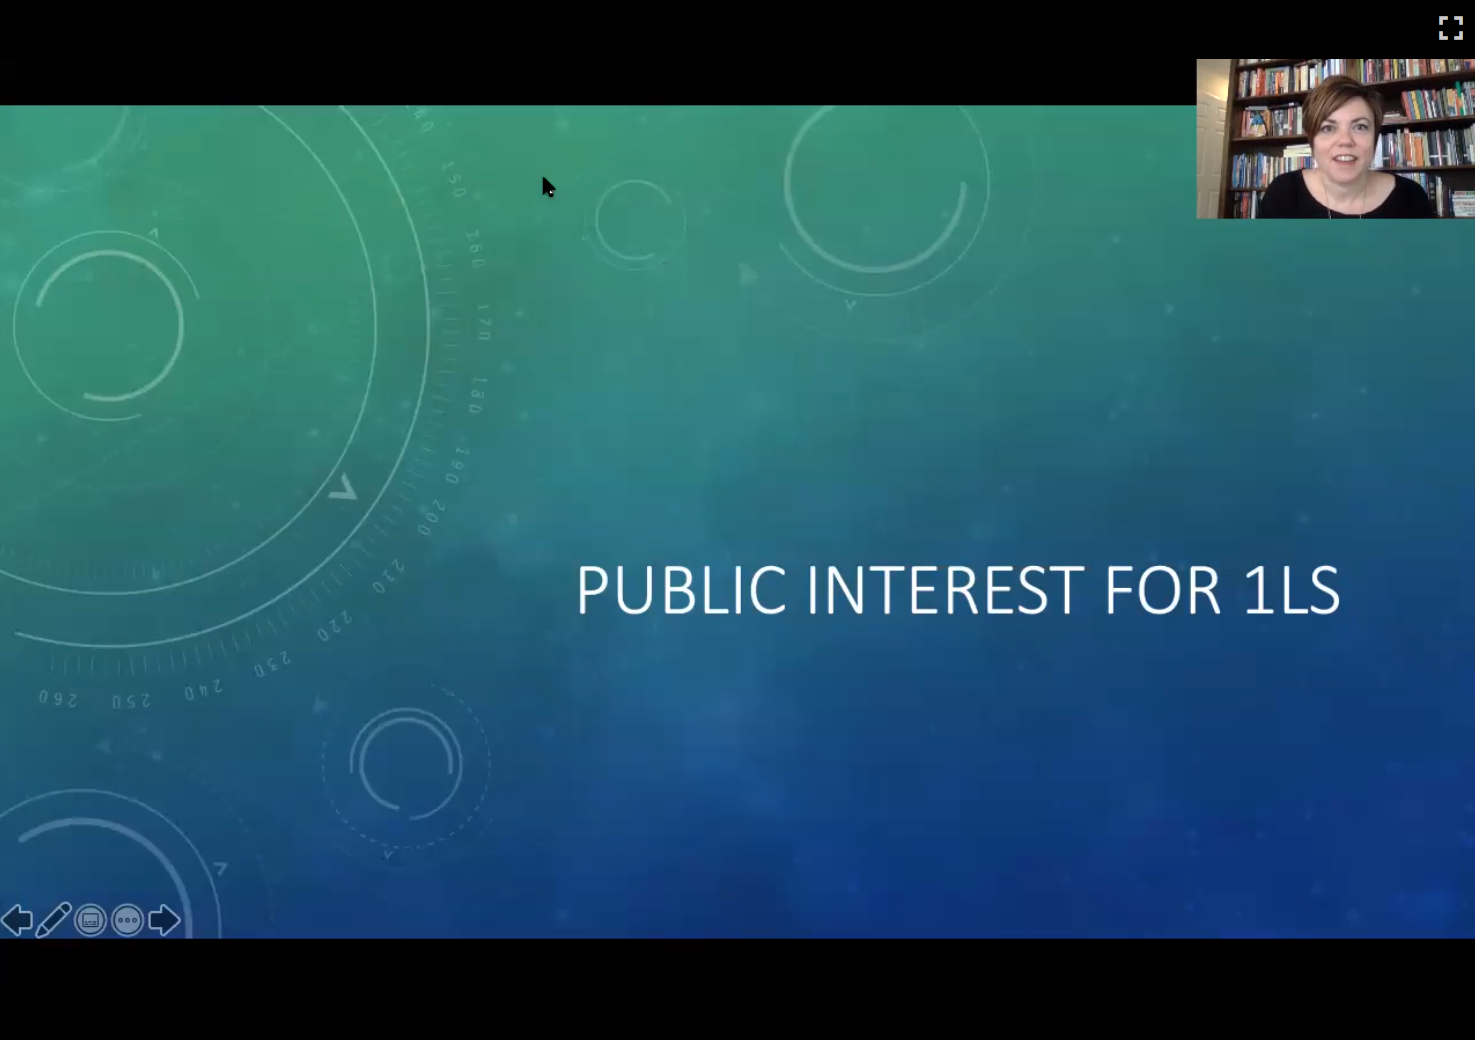 Public Interest for 1Ls video